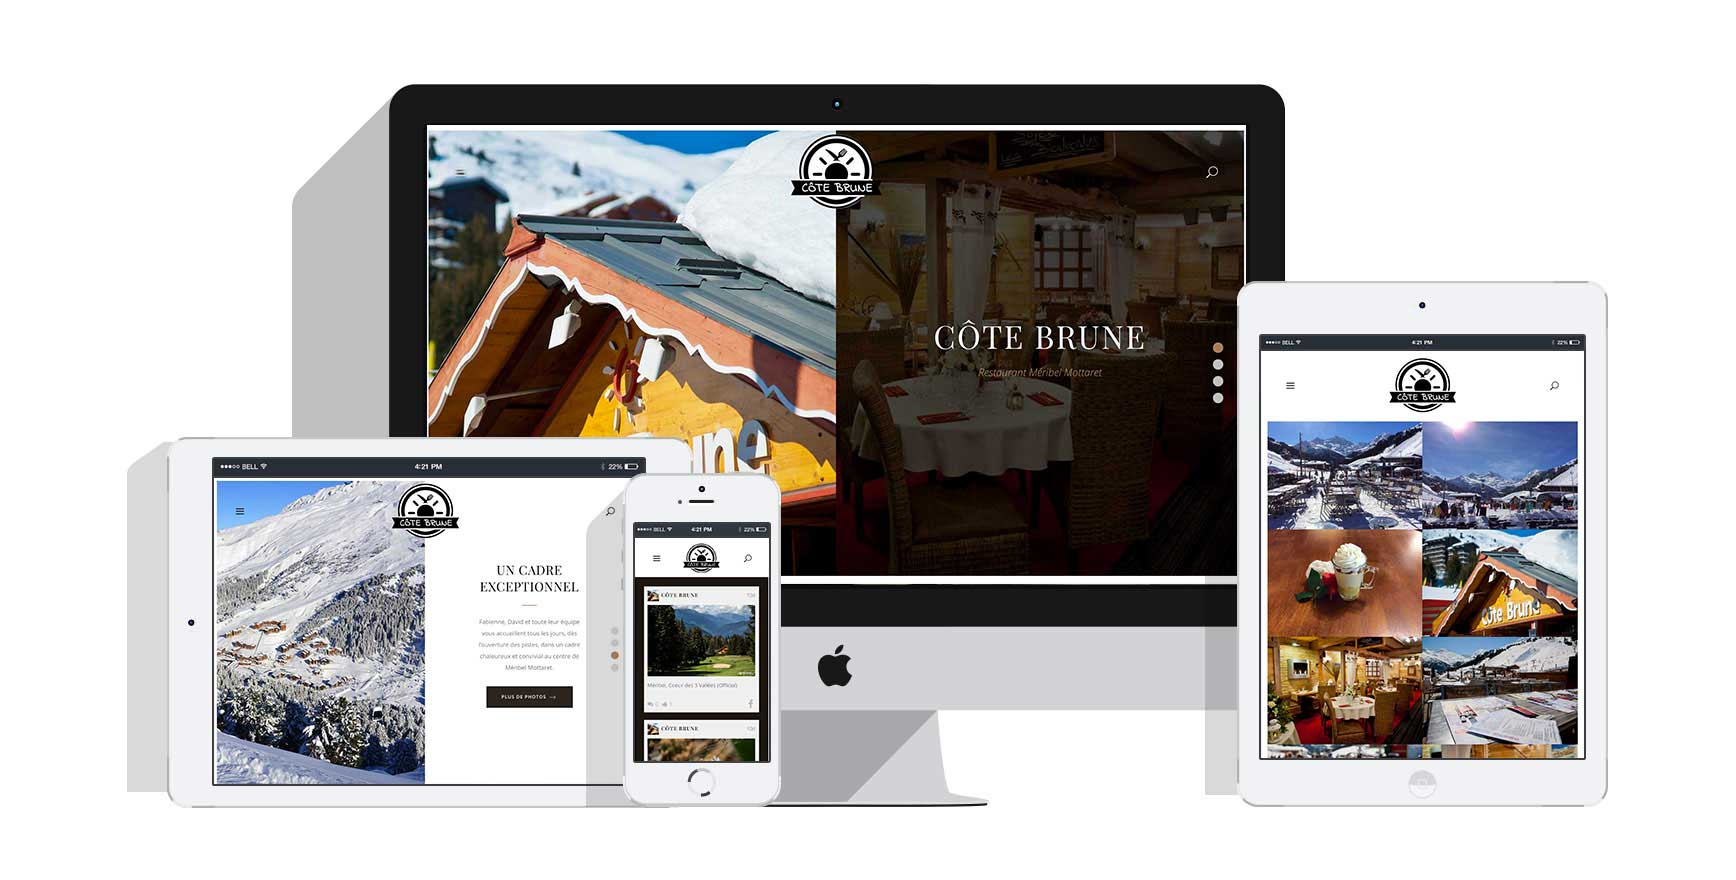 portfolio-cote-brune-florence-borrel-flobo-design-graphique-infographie-webdesign-savoie-tarentaise-meribel-menuires-courchevel